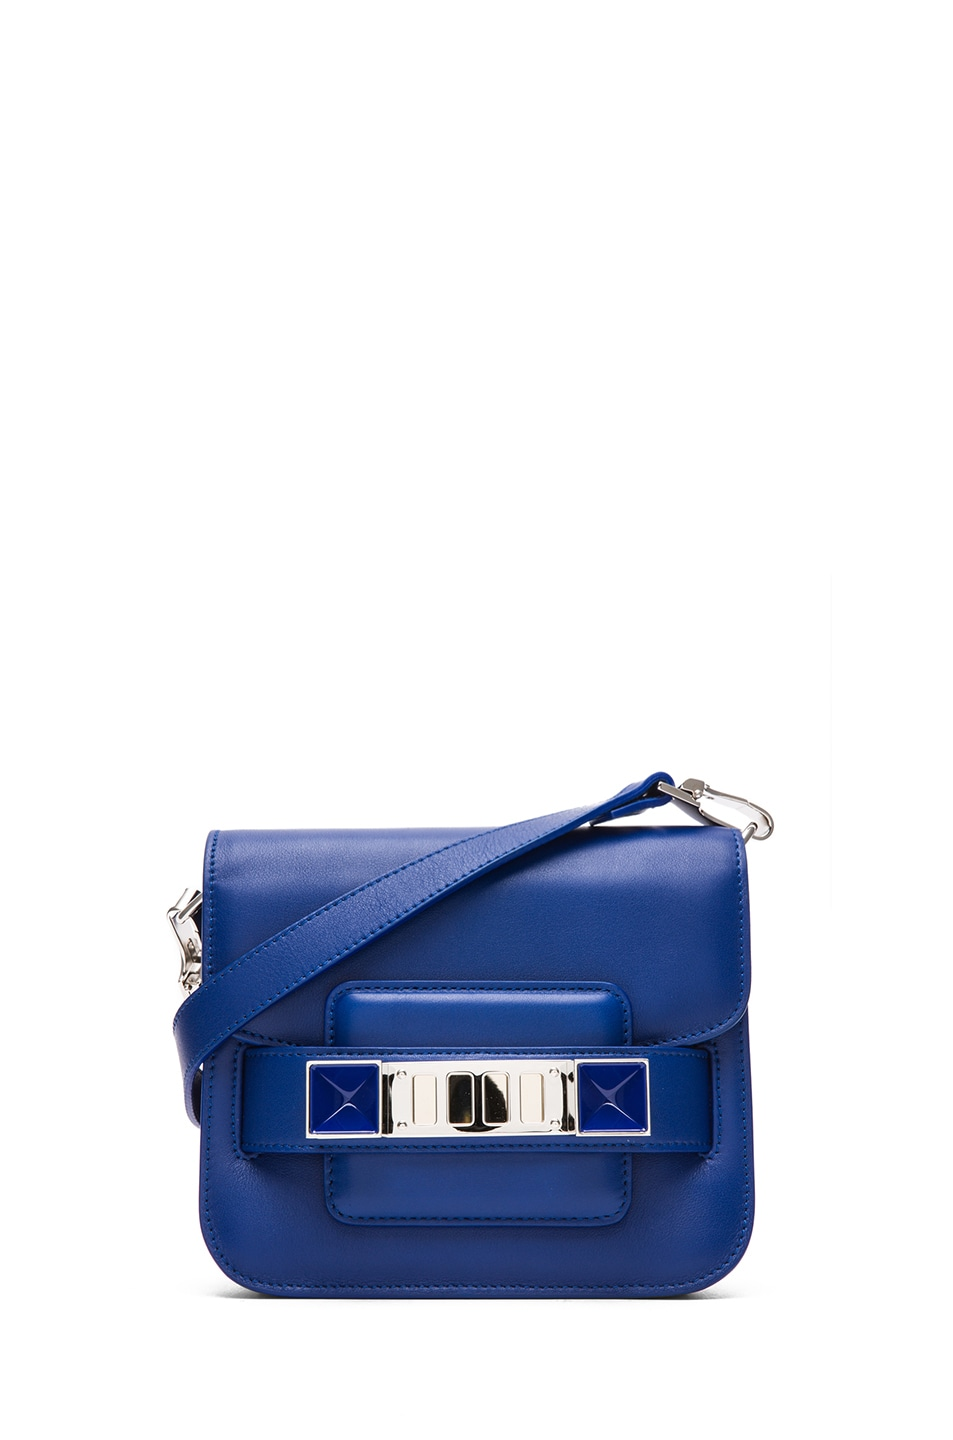 Image 1 of Proenza Schouler Tiny PS11 Smooth Leather Shoulder Bag in Royal Blue